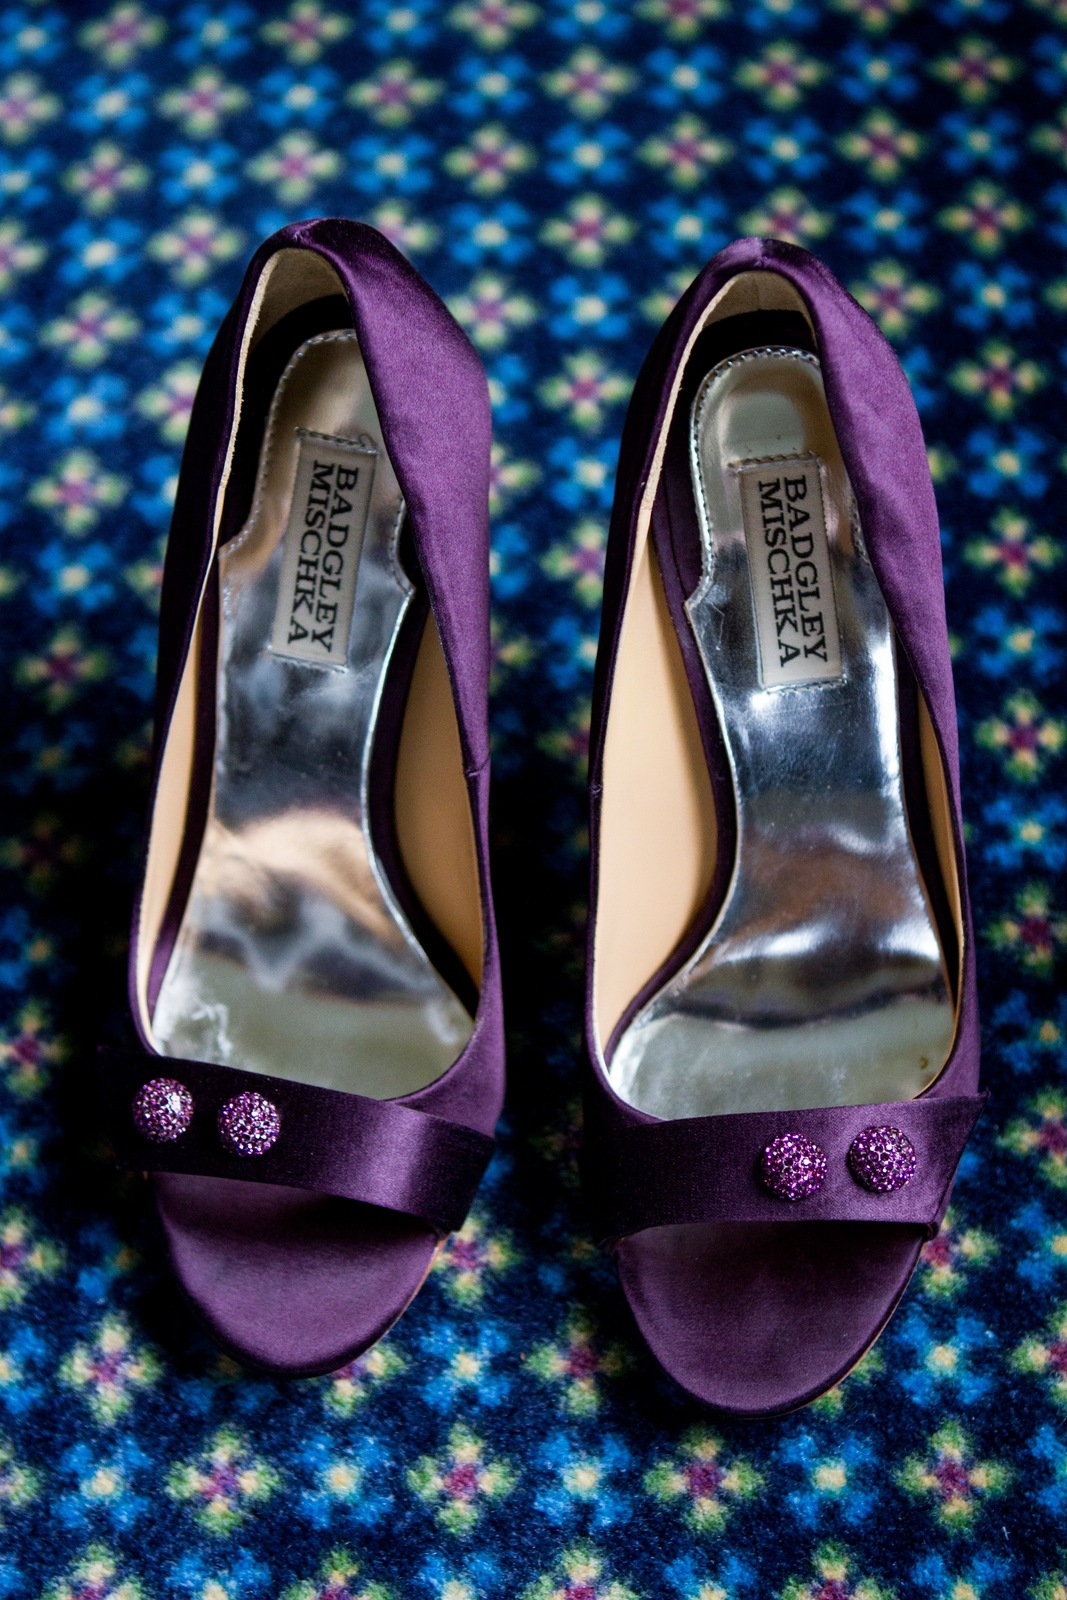 Wedding Shoes by Badgley Mischka - Banner Pumps in Plum Satin - Photo Courtesy of Brian Samuels Photography